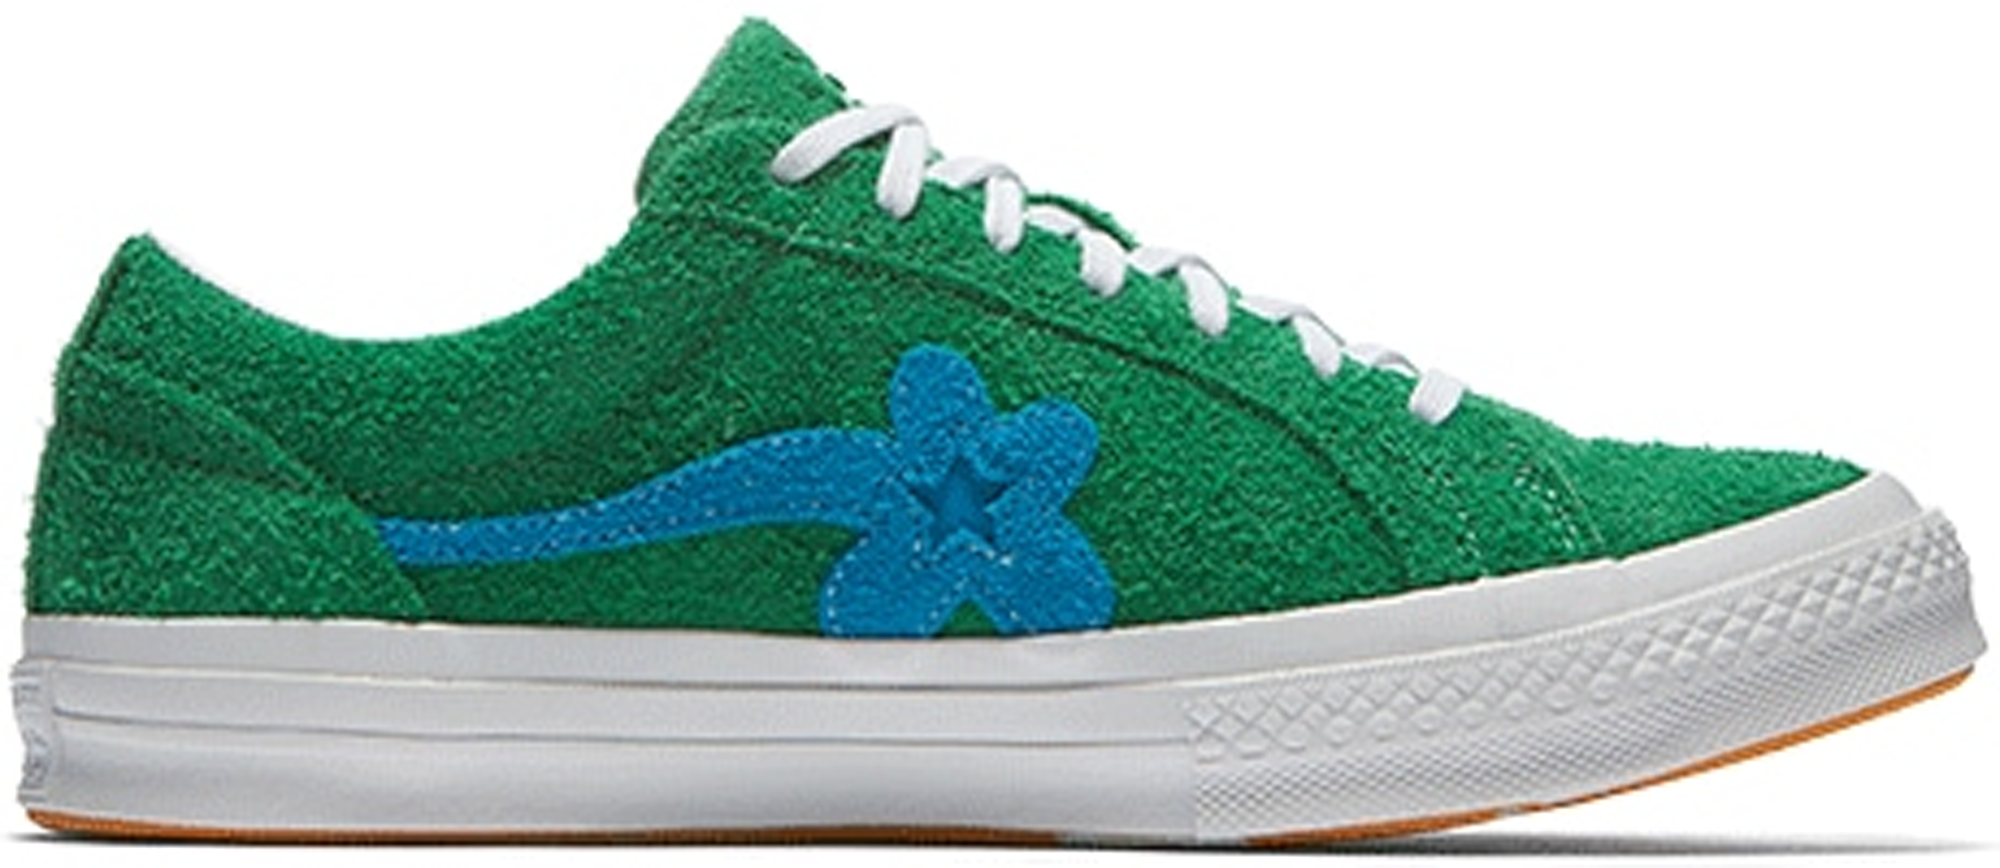 Converse One Star Ox Tyler The Creator Golf Le Fleur Jolly Green